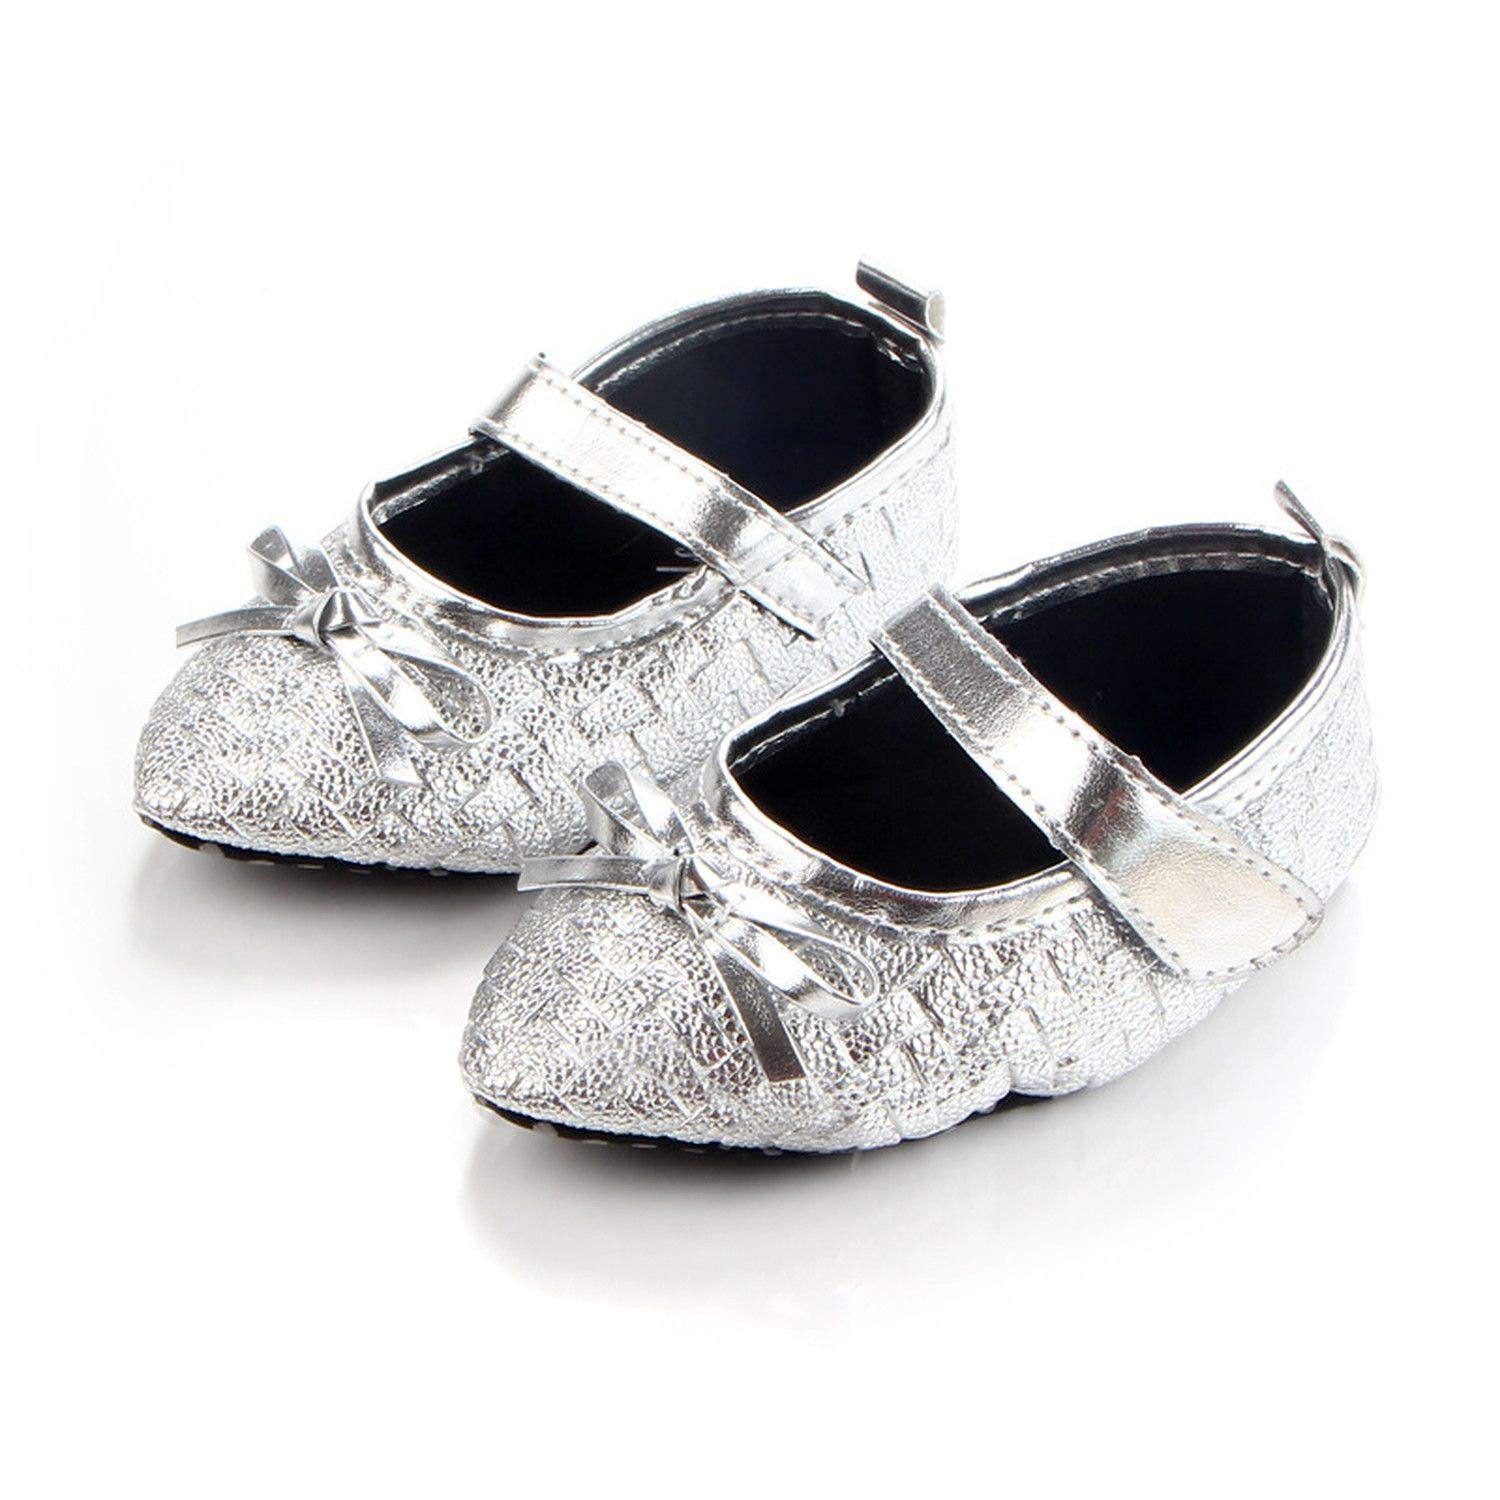 0-16M Baby Infant Kid Girl Shoes Gold Soft Sole Shoes Pointed Toe Toddler Bowknot Princess Girl Shoes